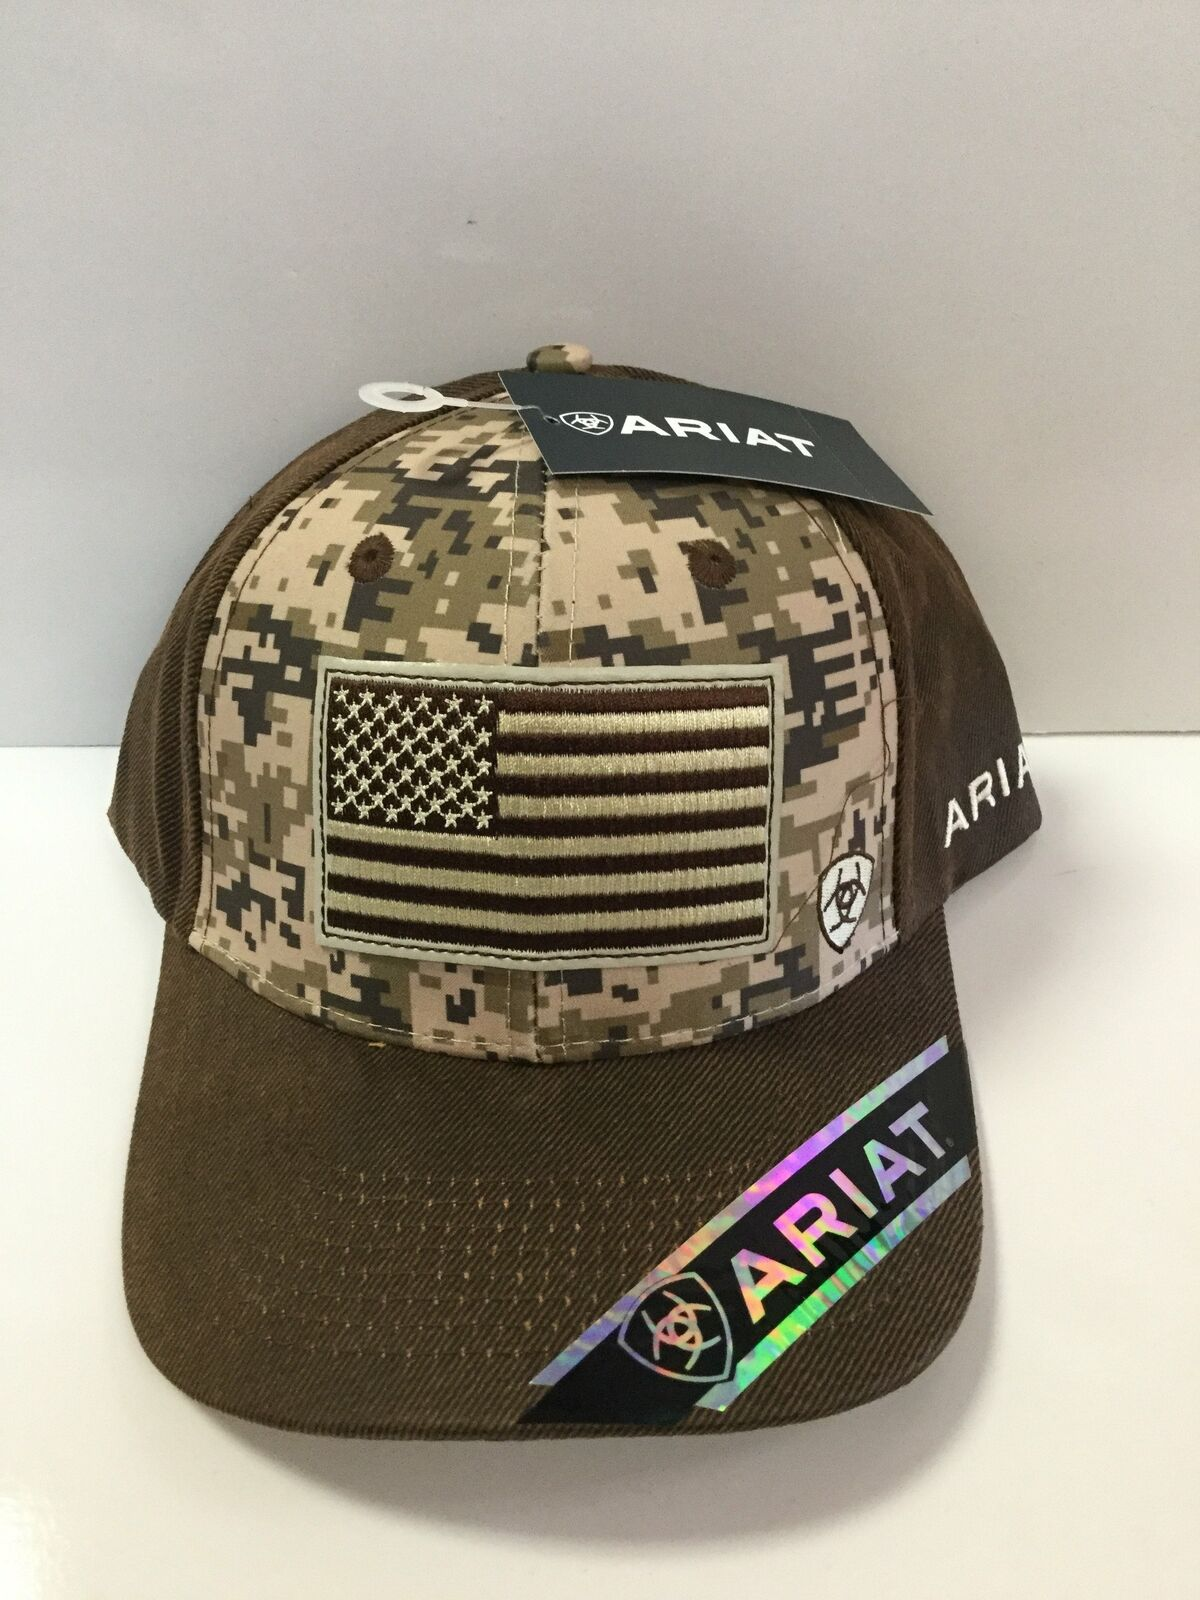 a1f34e5e6755e Ariat Mens Hat Baseball Cap Logo Snapback USA Flag Camo 15094156 for ...